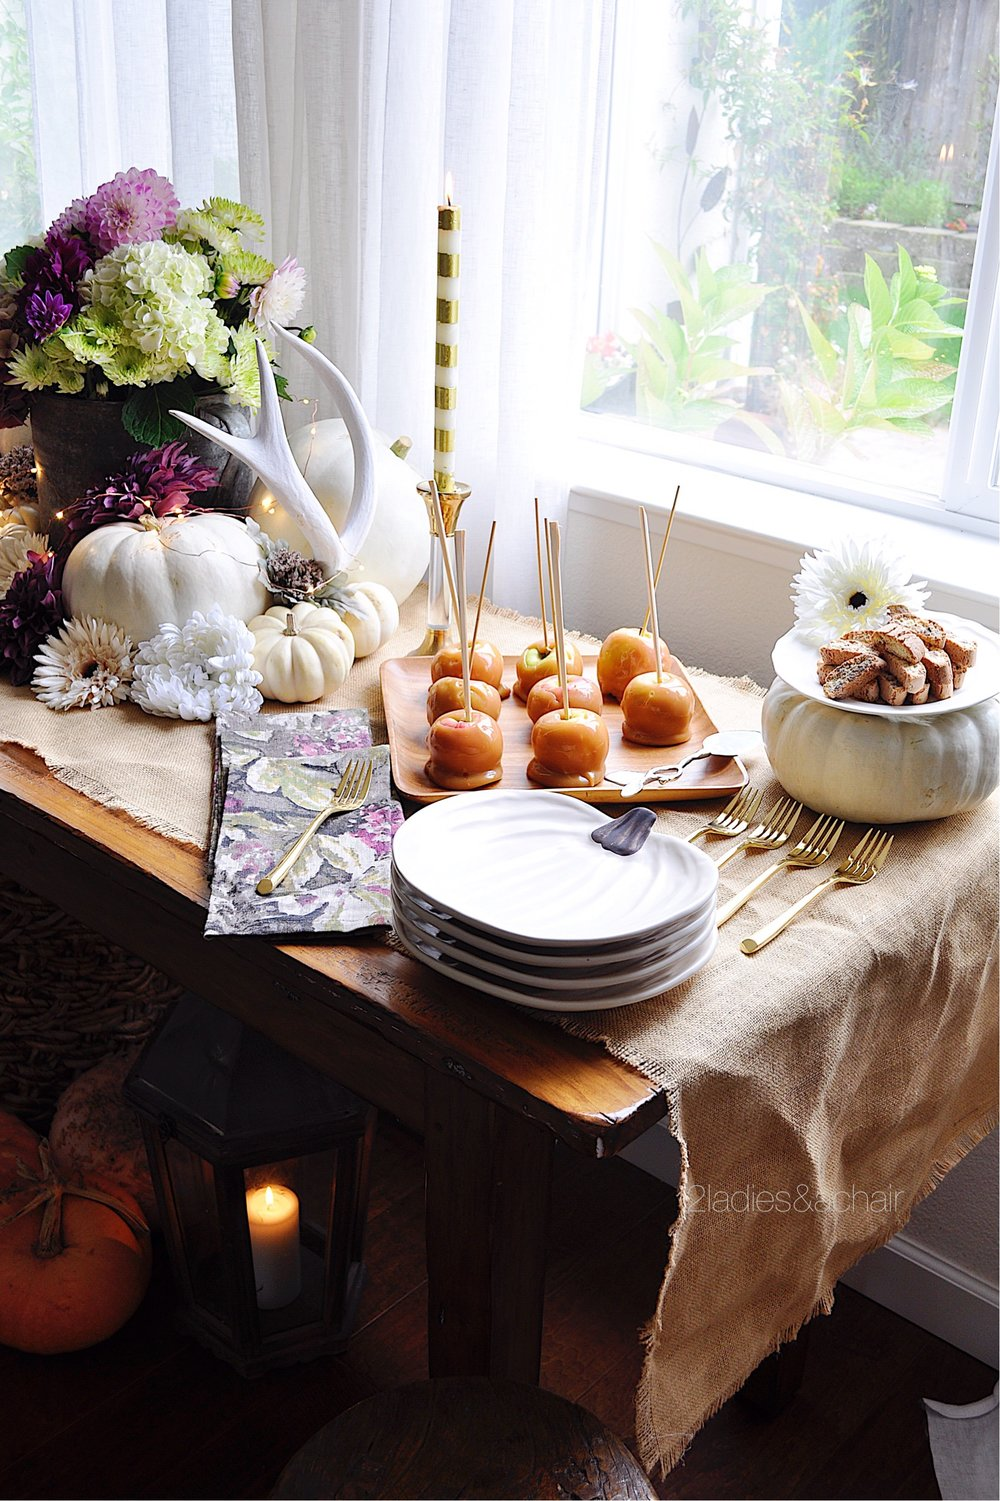 fall table IMG_9547(2).JPG